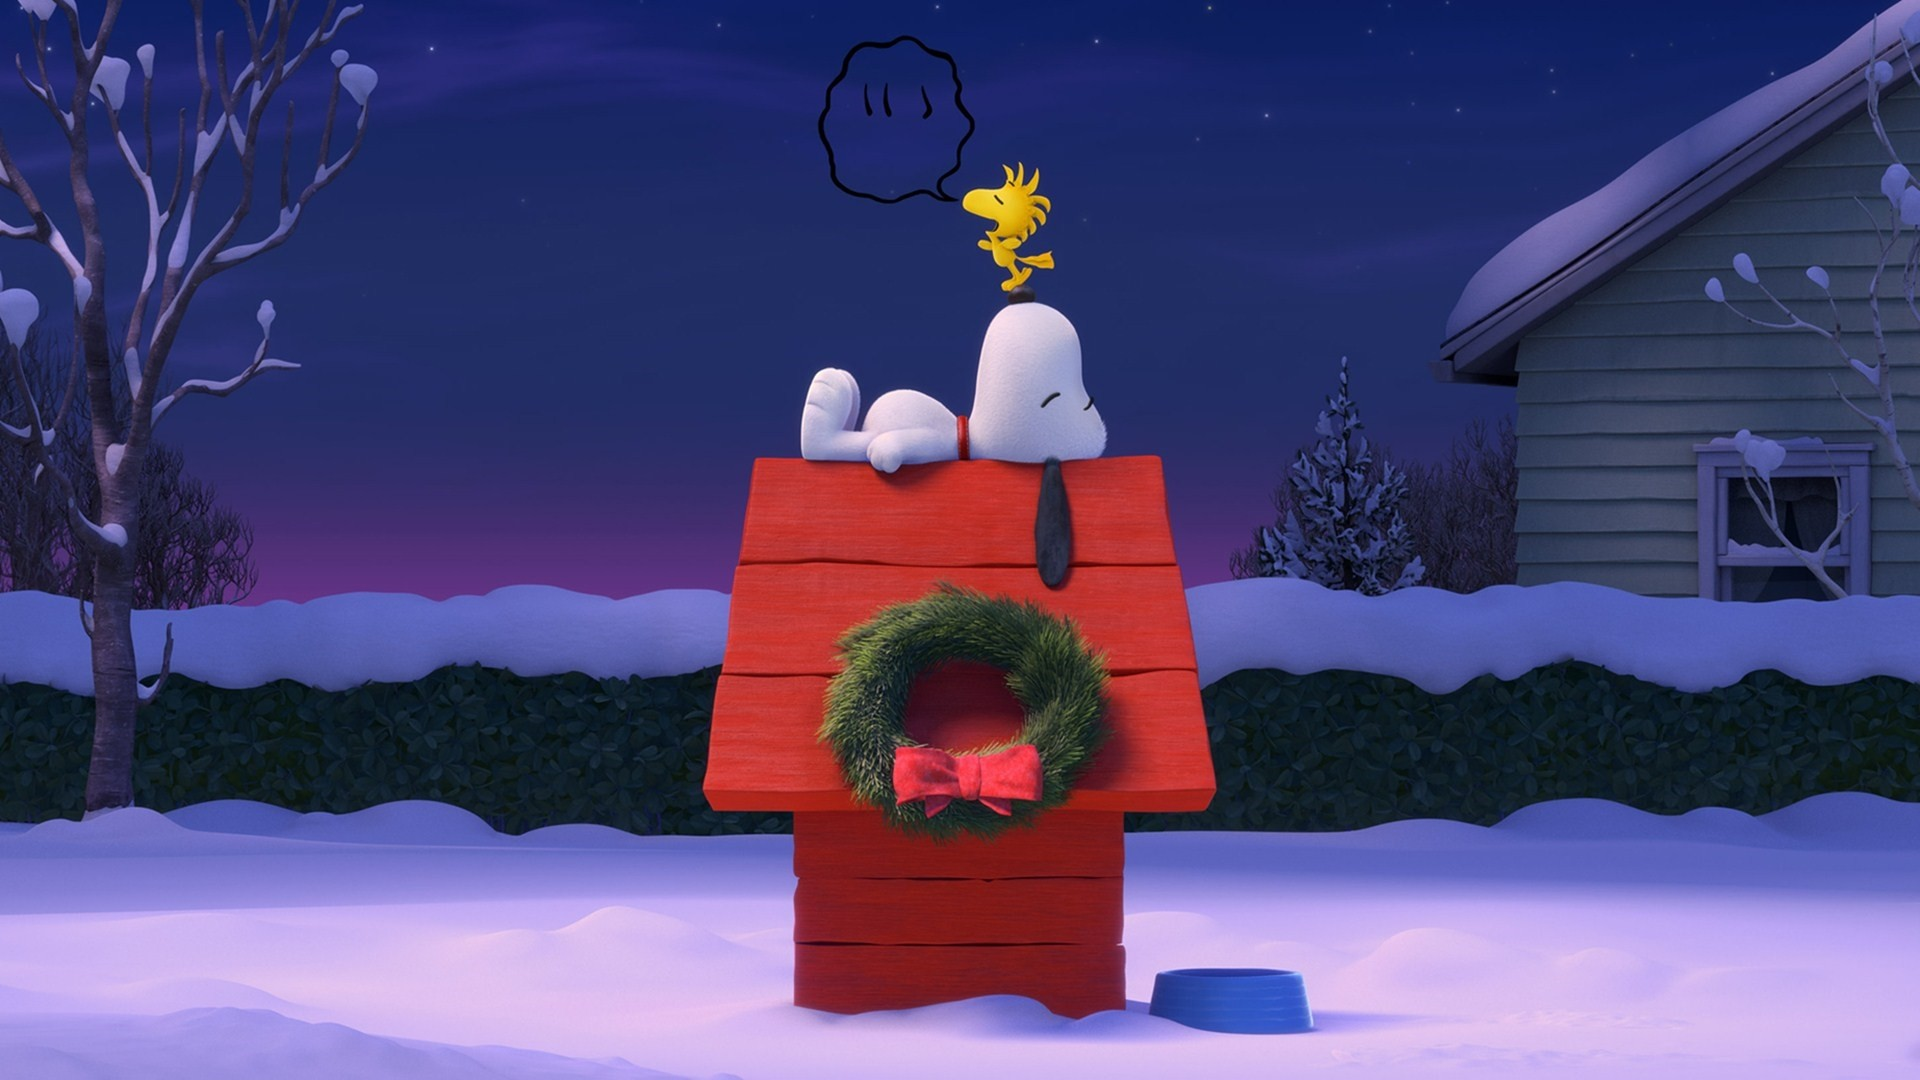 1920x1080 ... Desktop Snoopy Christmas Wallpaper Snoopy Background ...